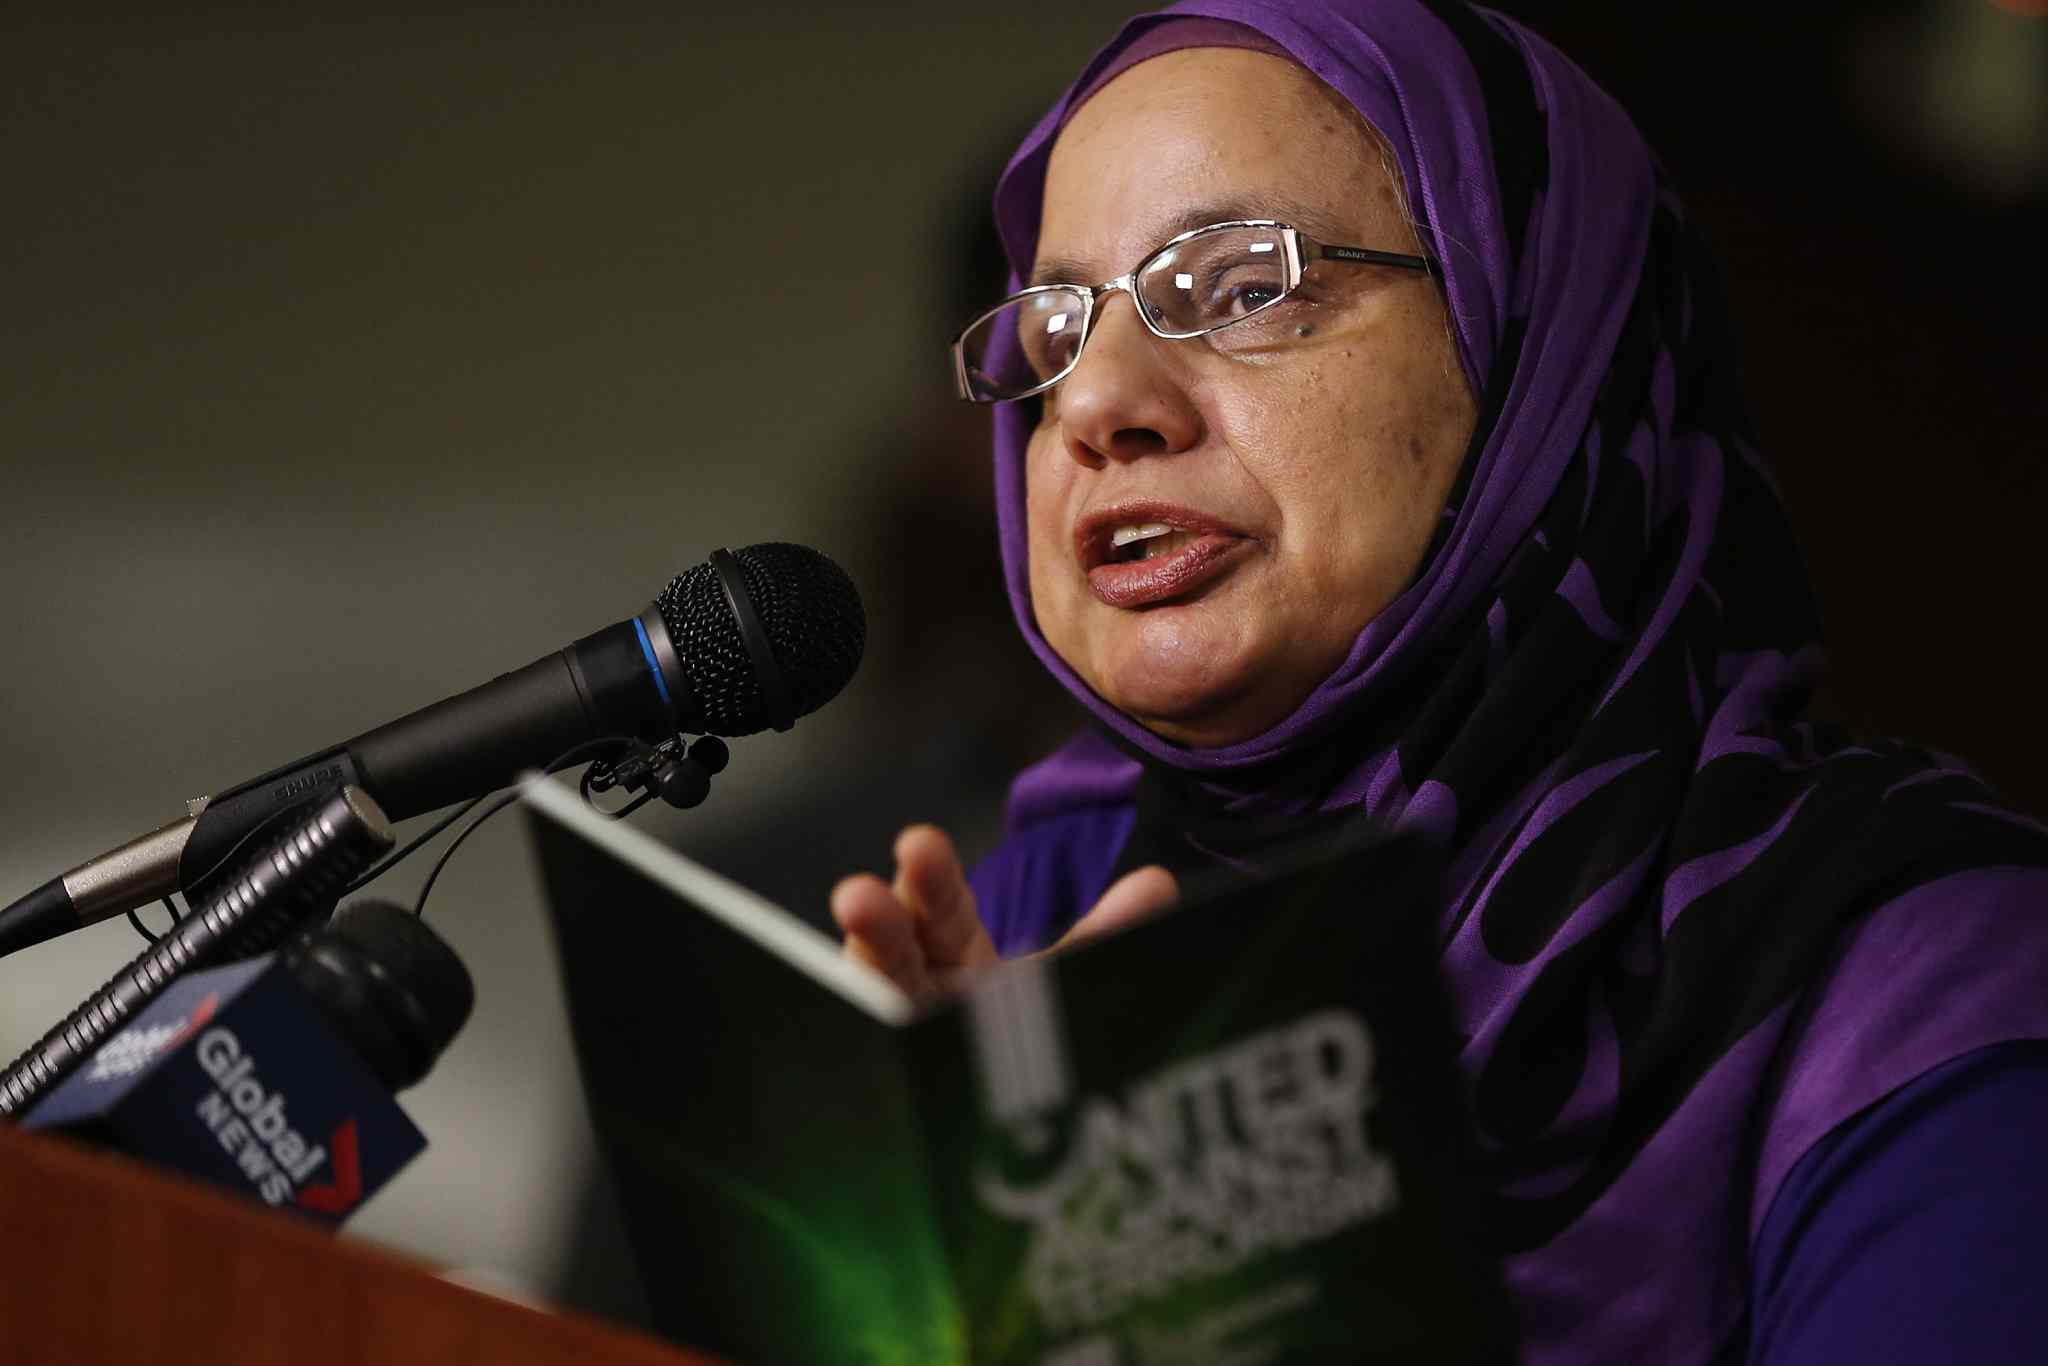 Shahina Siddiqui says some Muslim students are reluctant to speak openly about global politics.